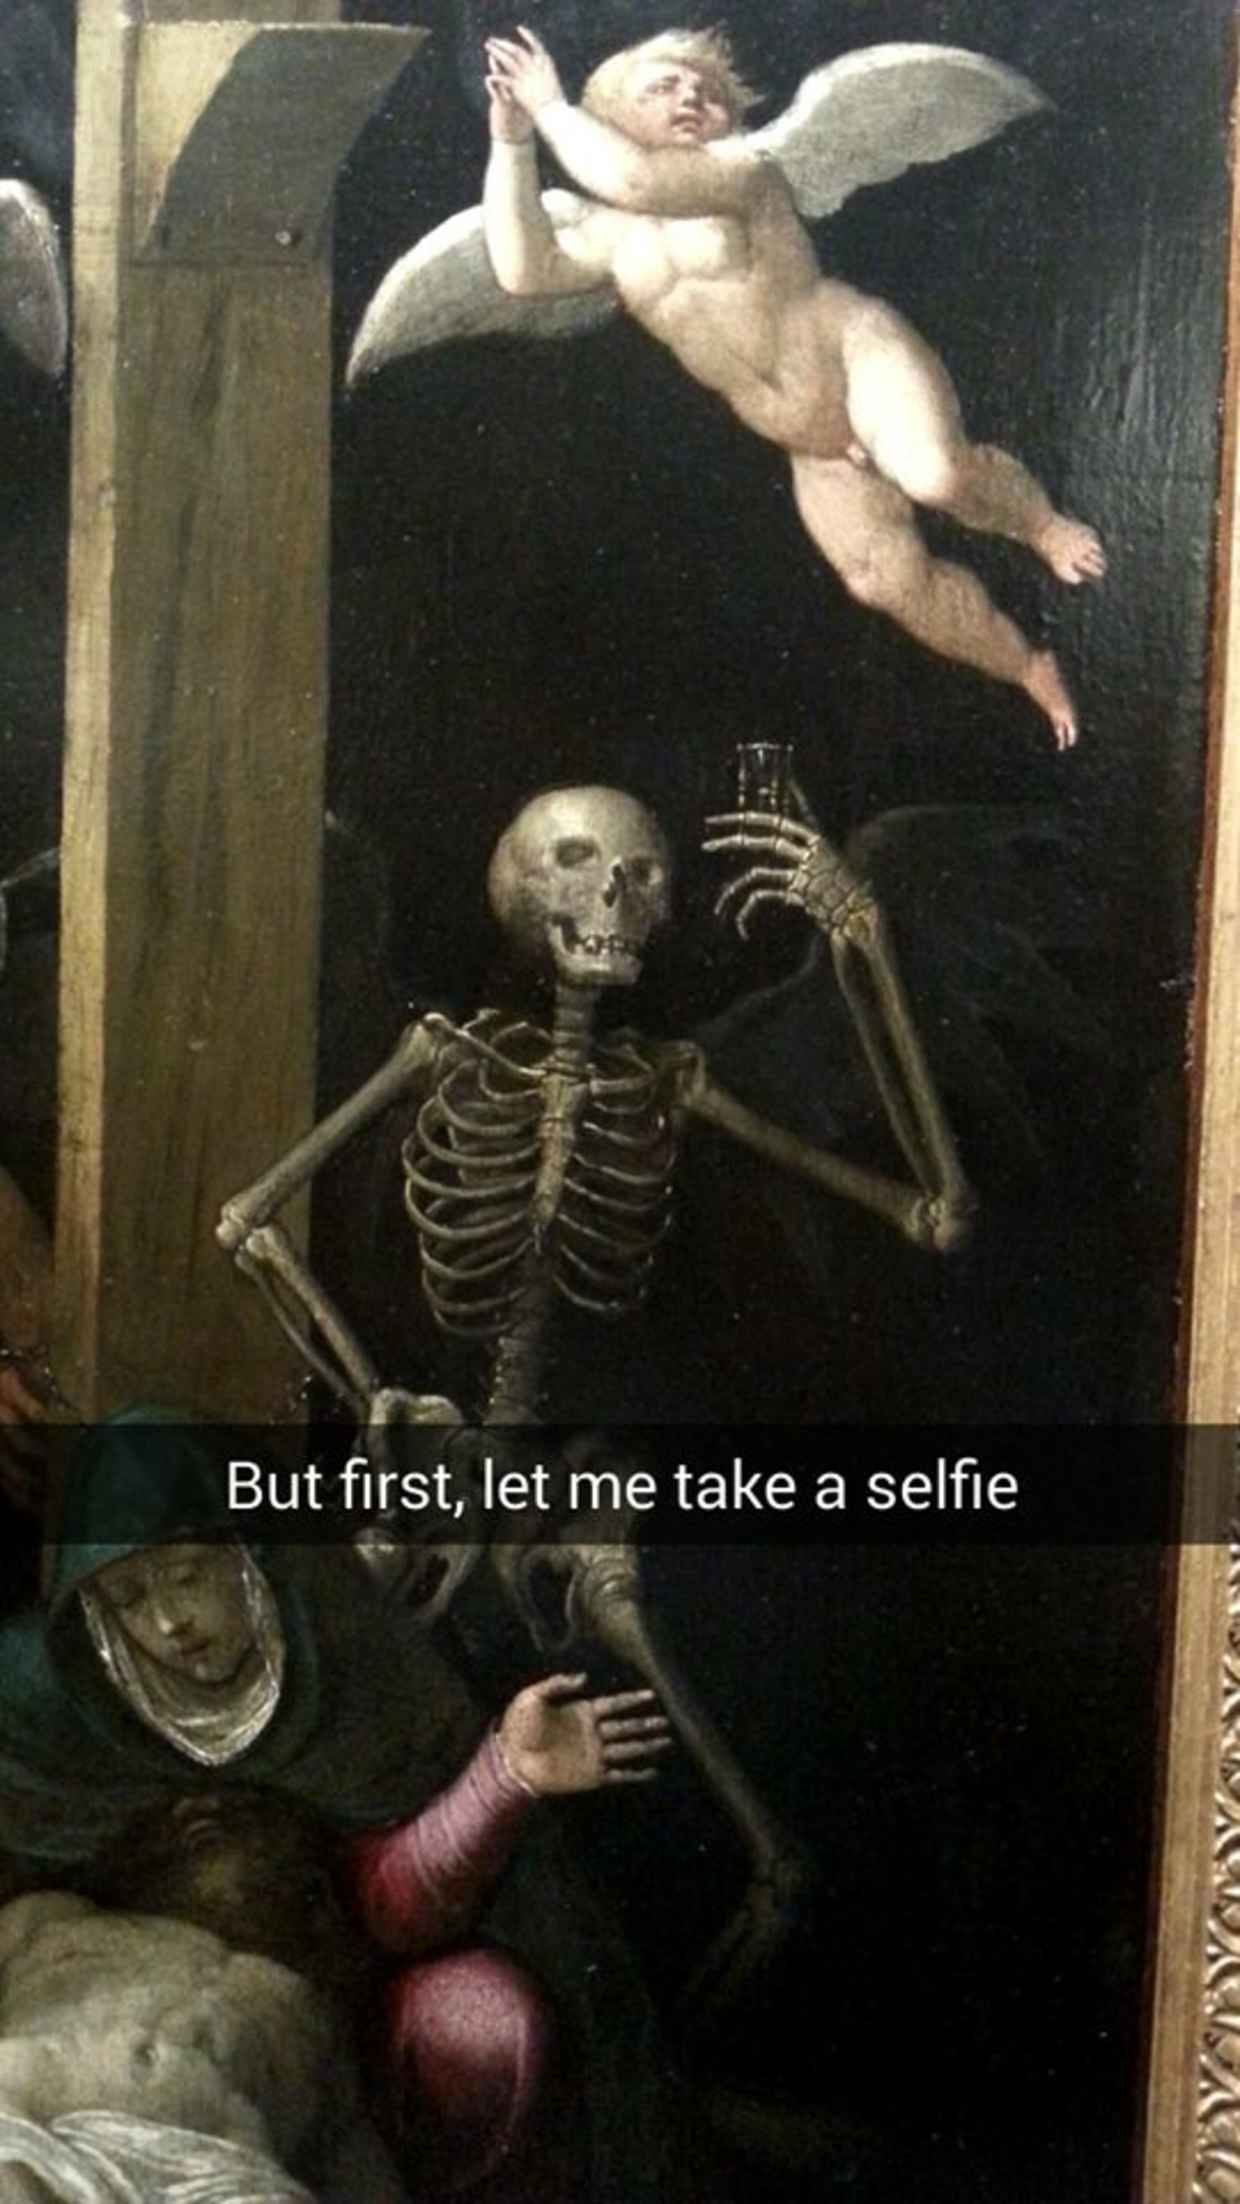 Historical Works Of Art That Are Now Unbelievably Funny Art - 27 historical works of art that are now unbelievably funny